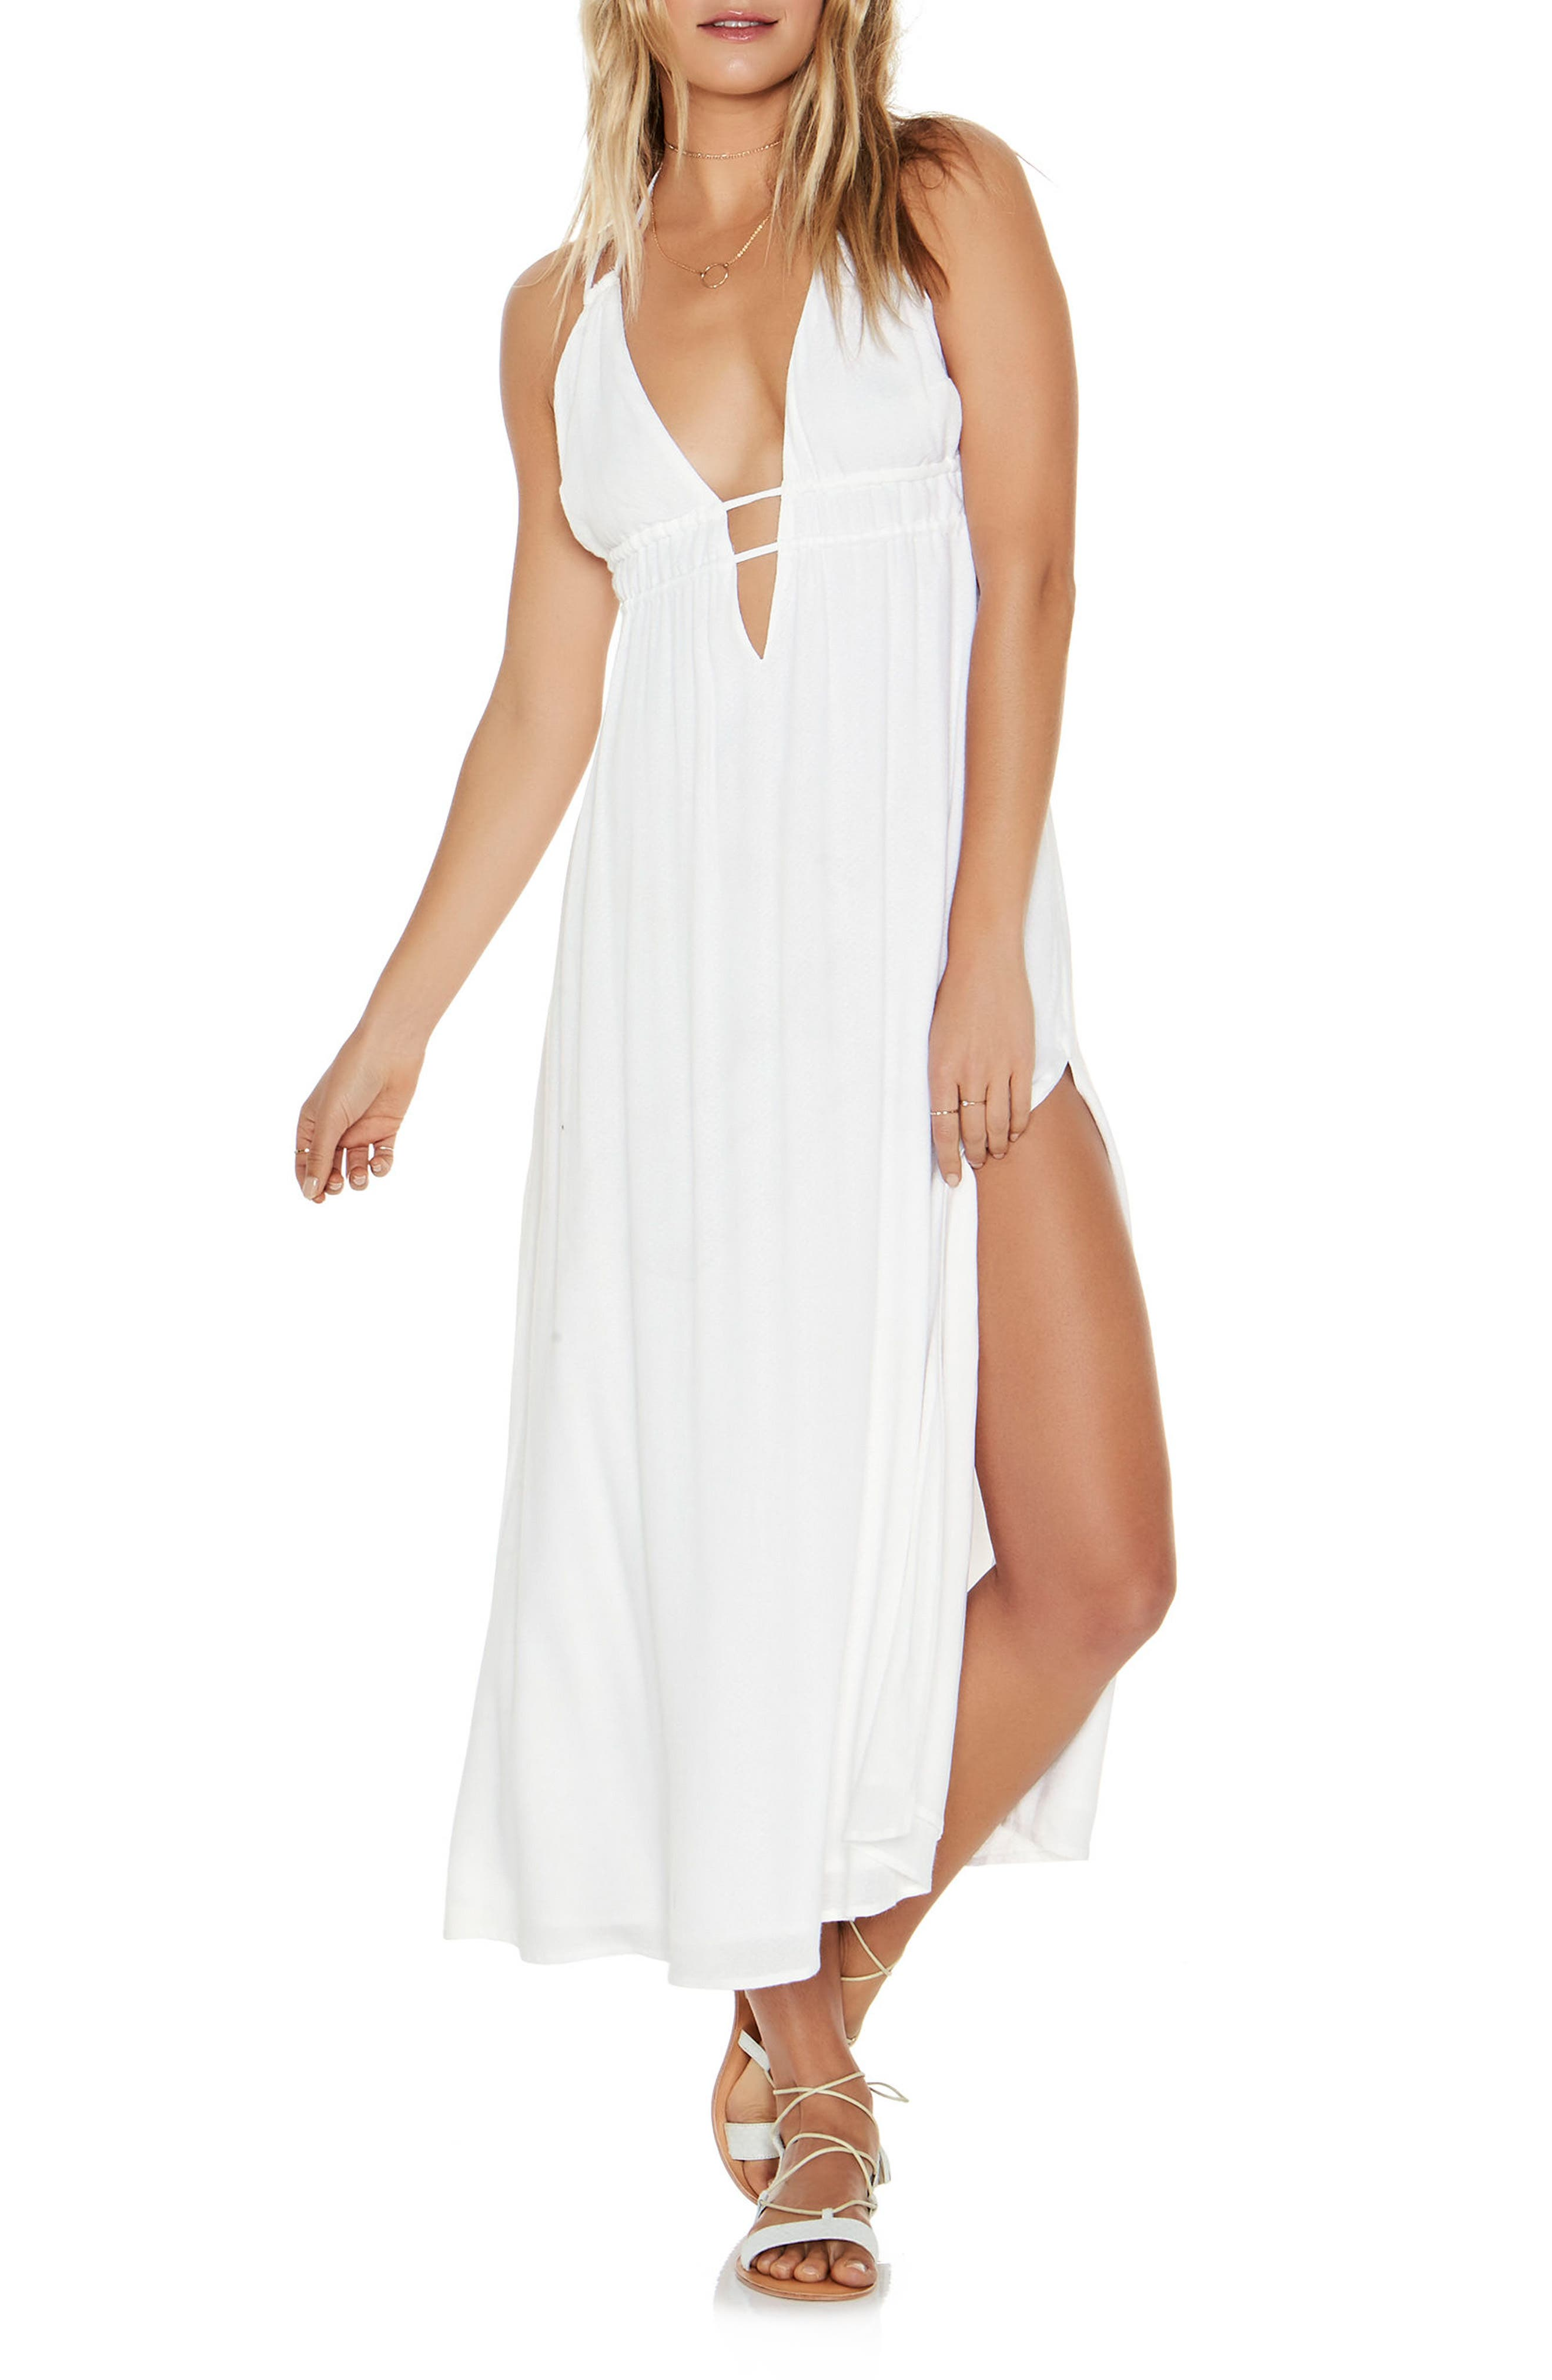 Beachside Beauty Cover-Up Dress,                         Main,                         color, White